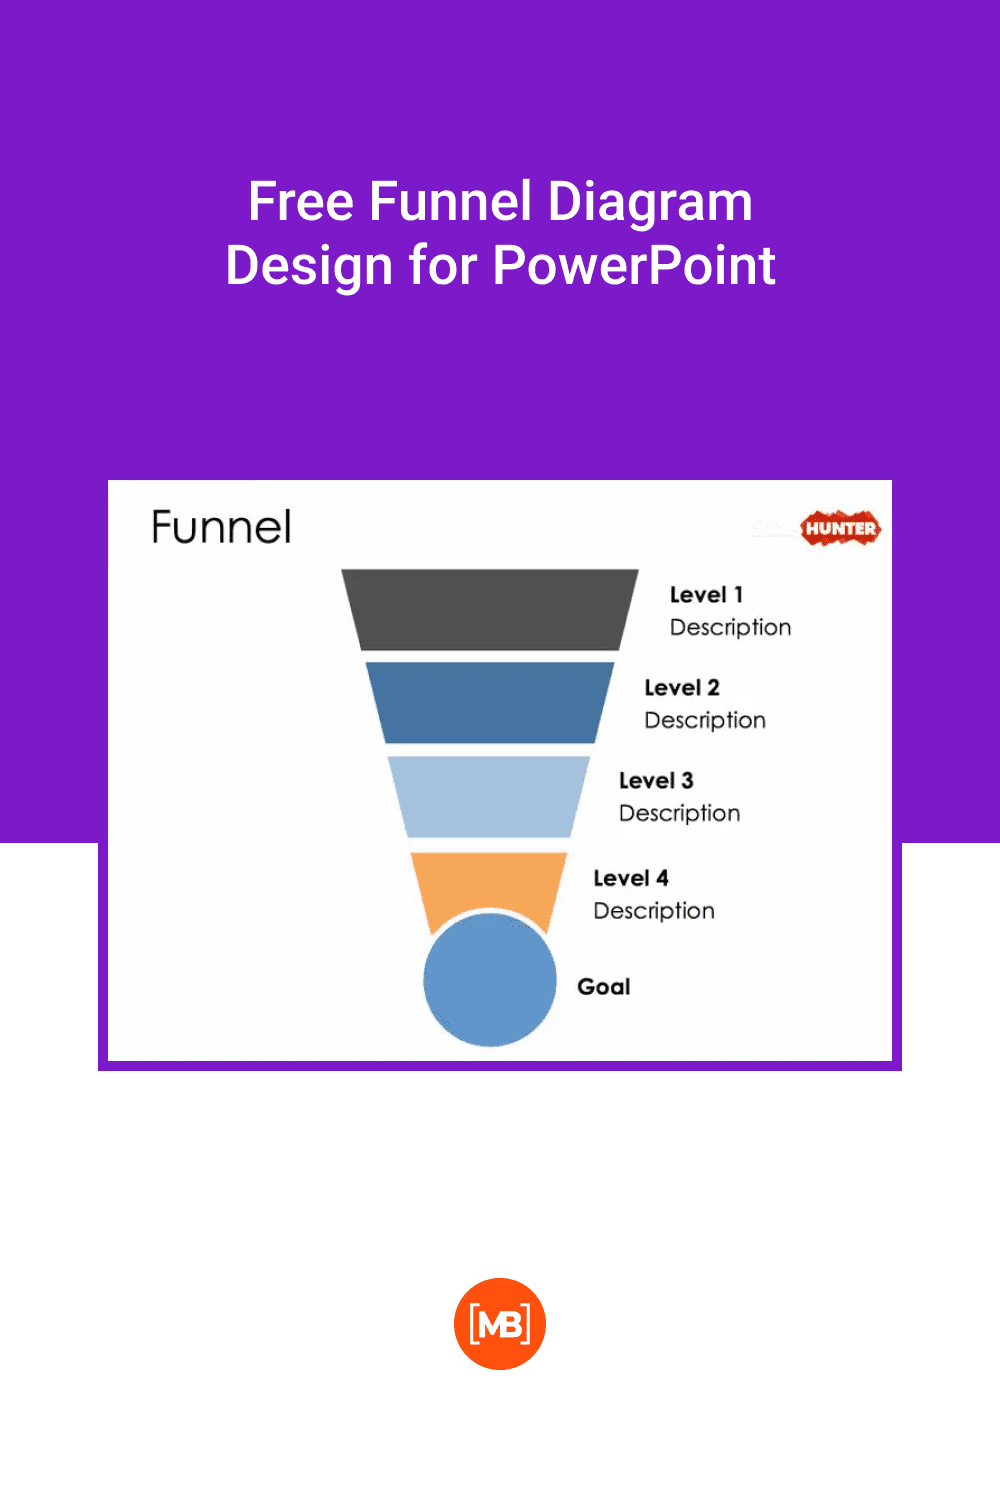 Free Funnel Diagram Design for PowerPoint.